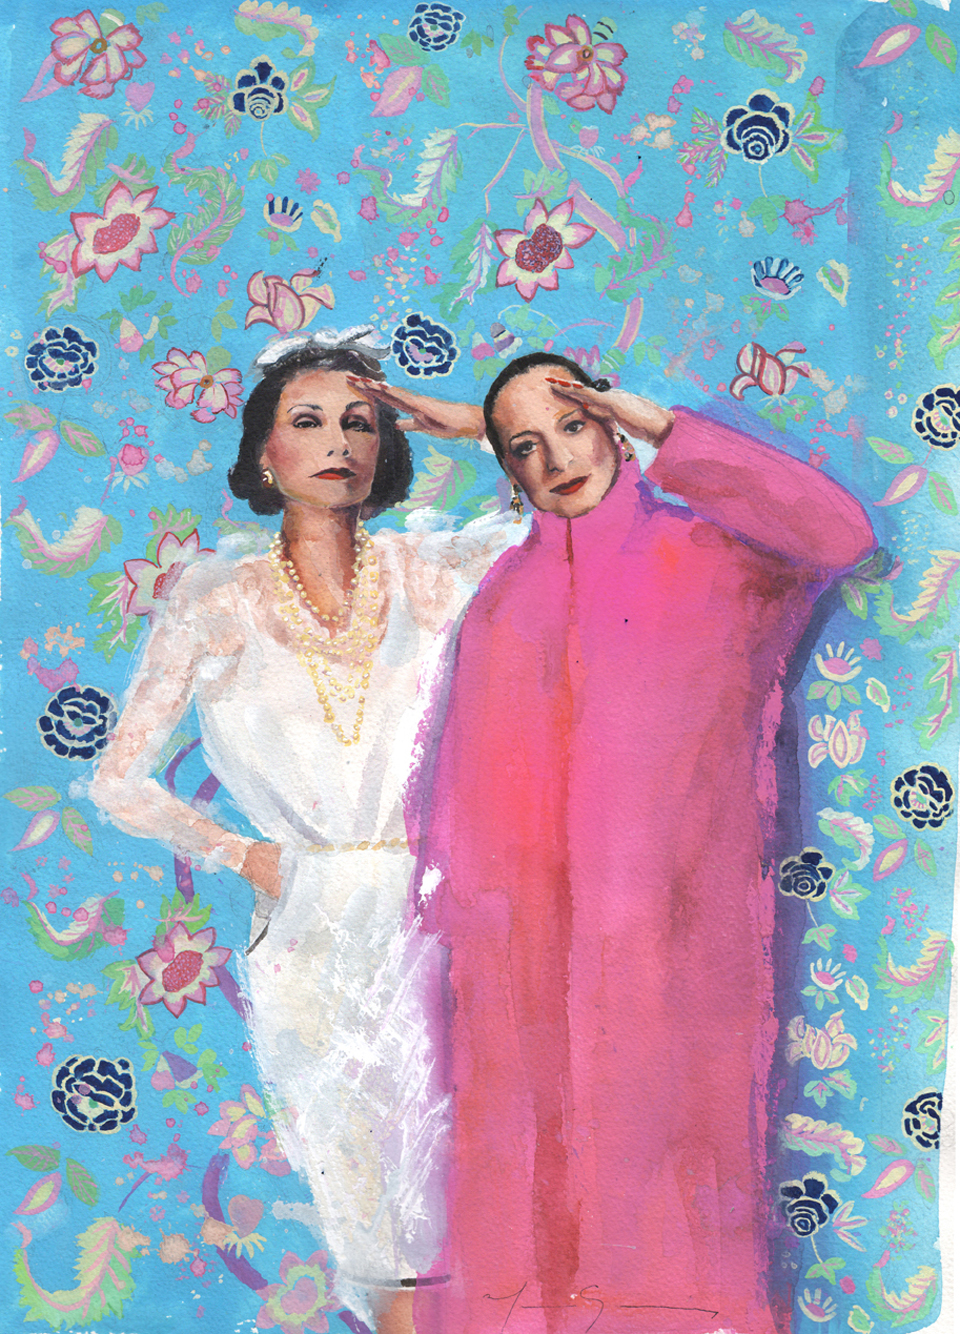 Marcela-Gutierrez-Diana-Vreeland-The-only-good-room